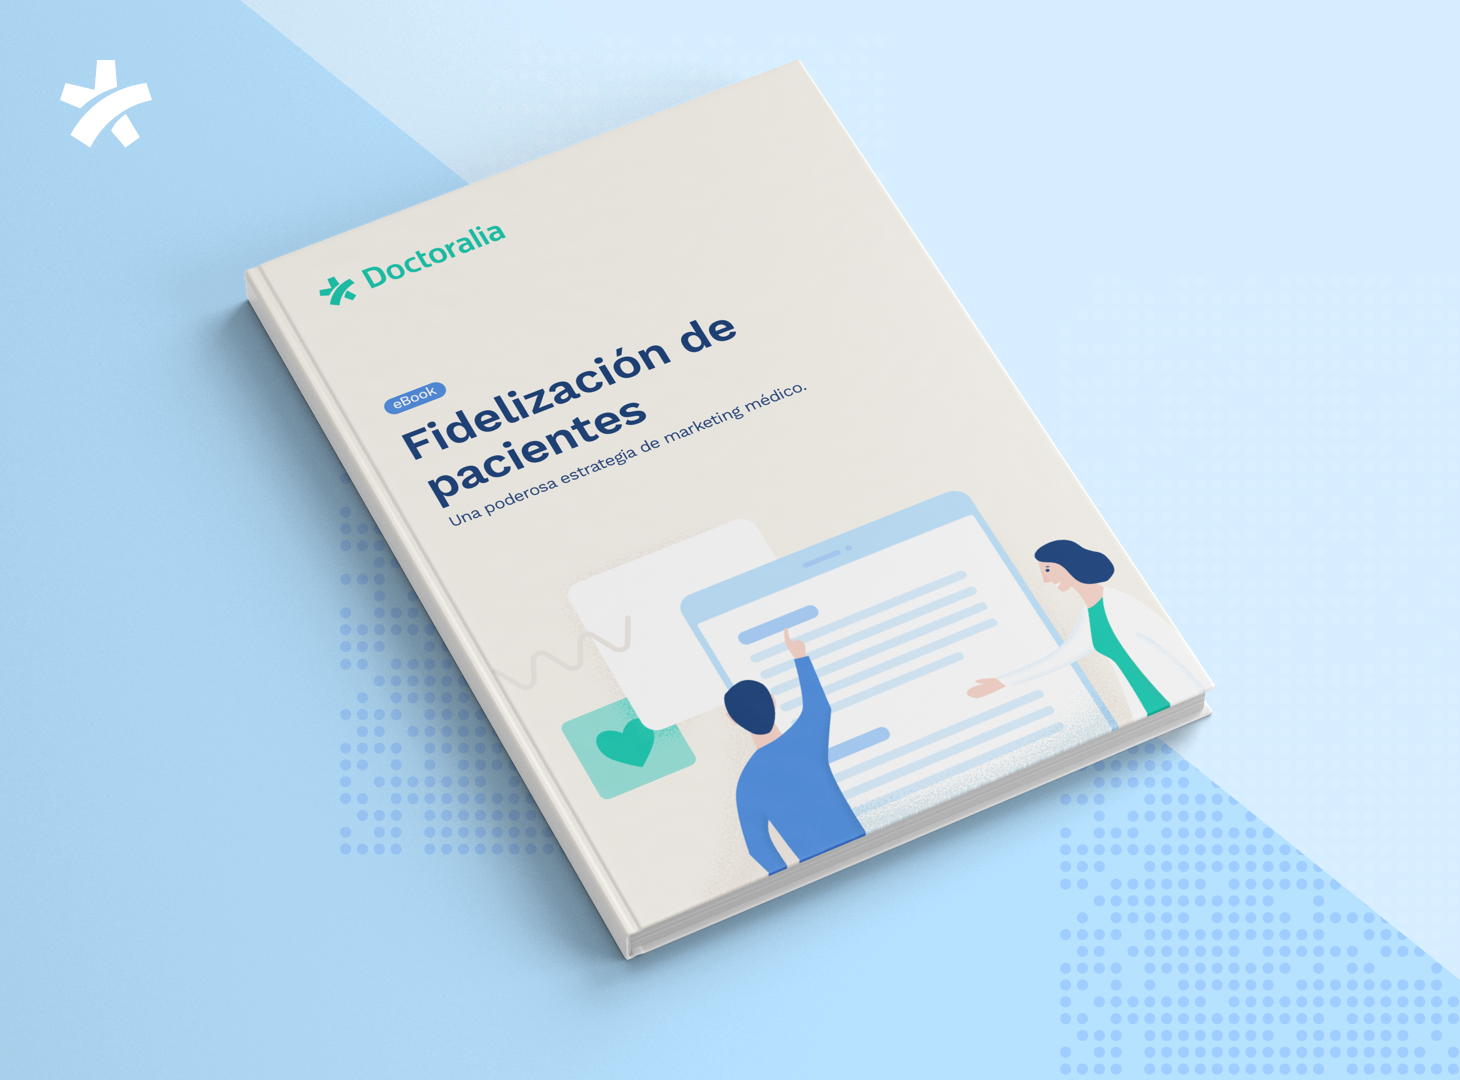 shareable-es-ebook-fidelizacion-pacientes-mockup-bg-blue-1